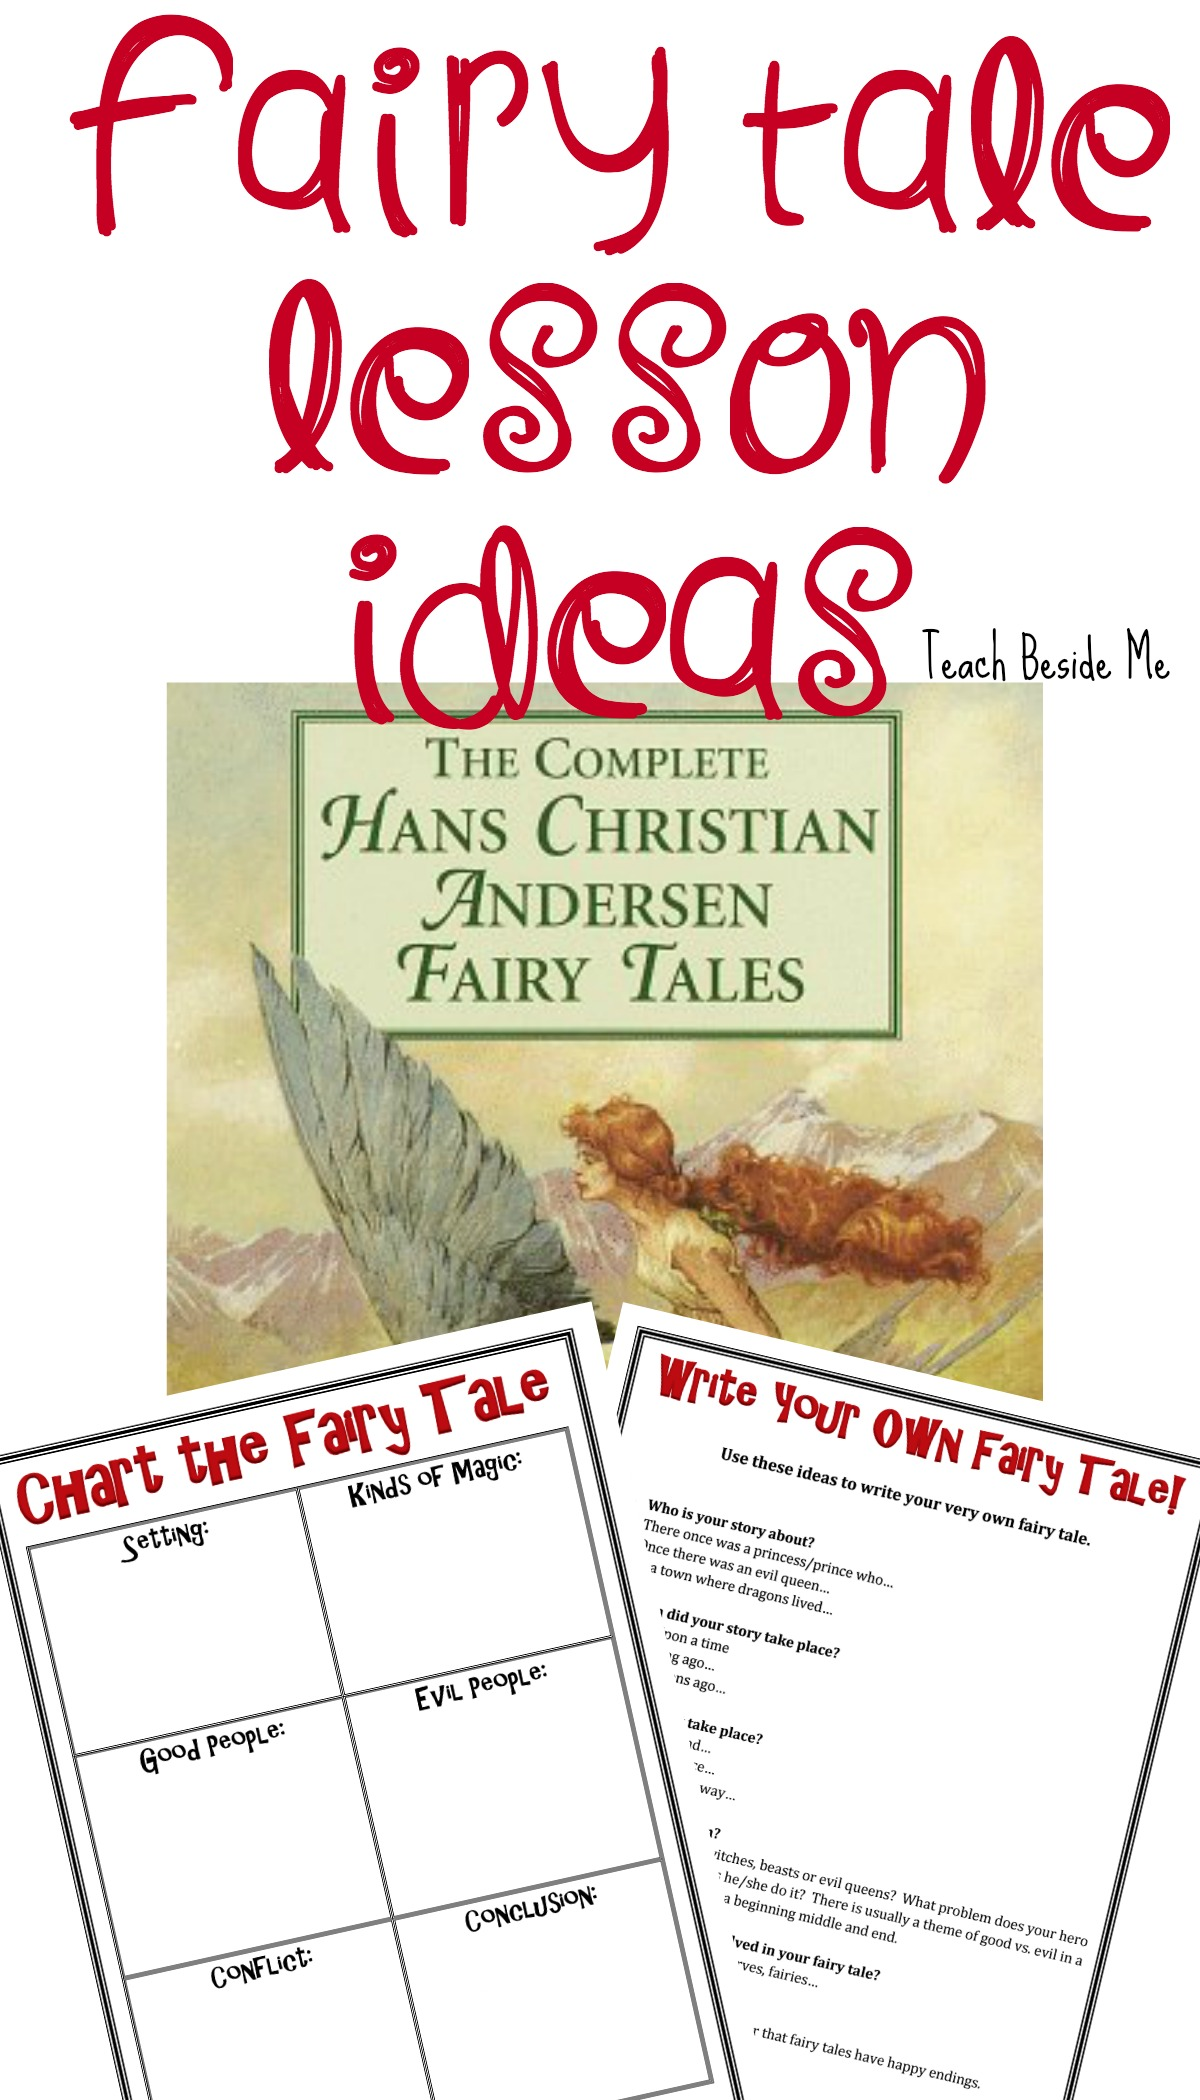 Fairy Tale Lesson Ideas with Hans Christian Andersen